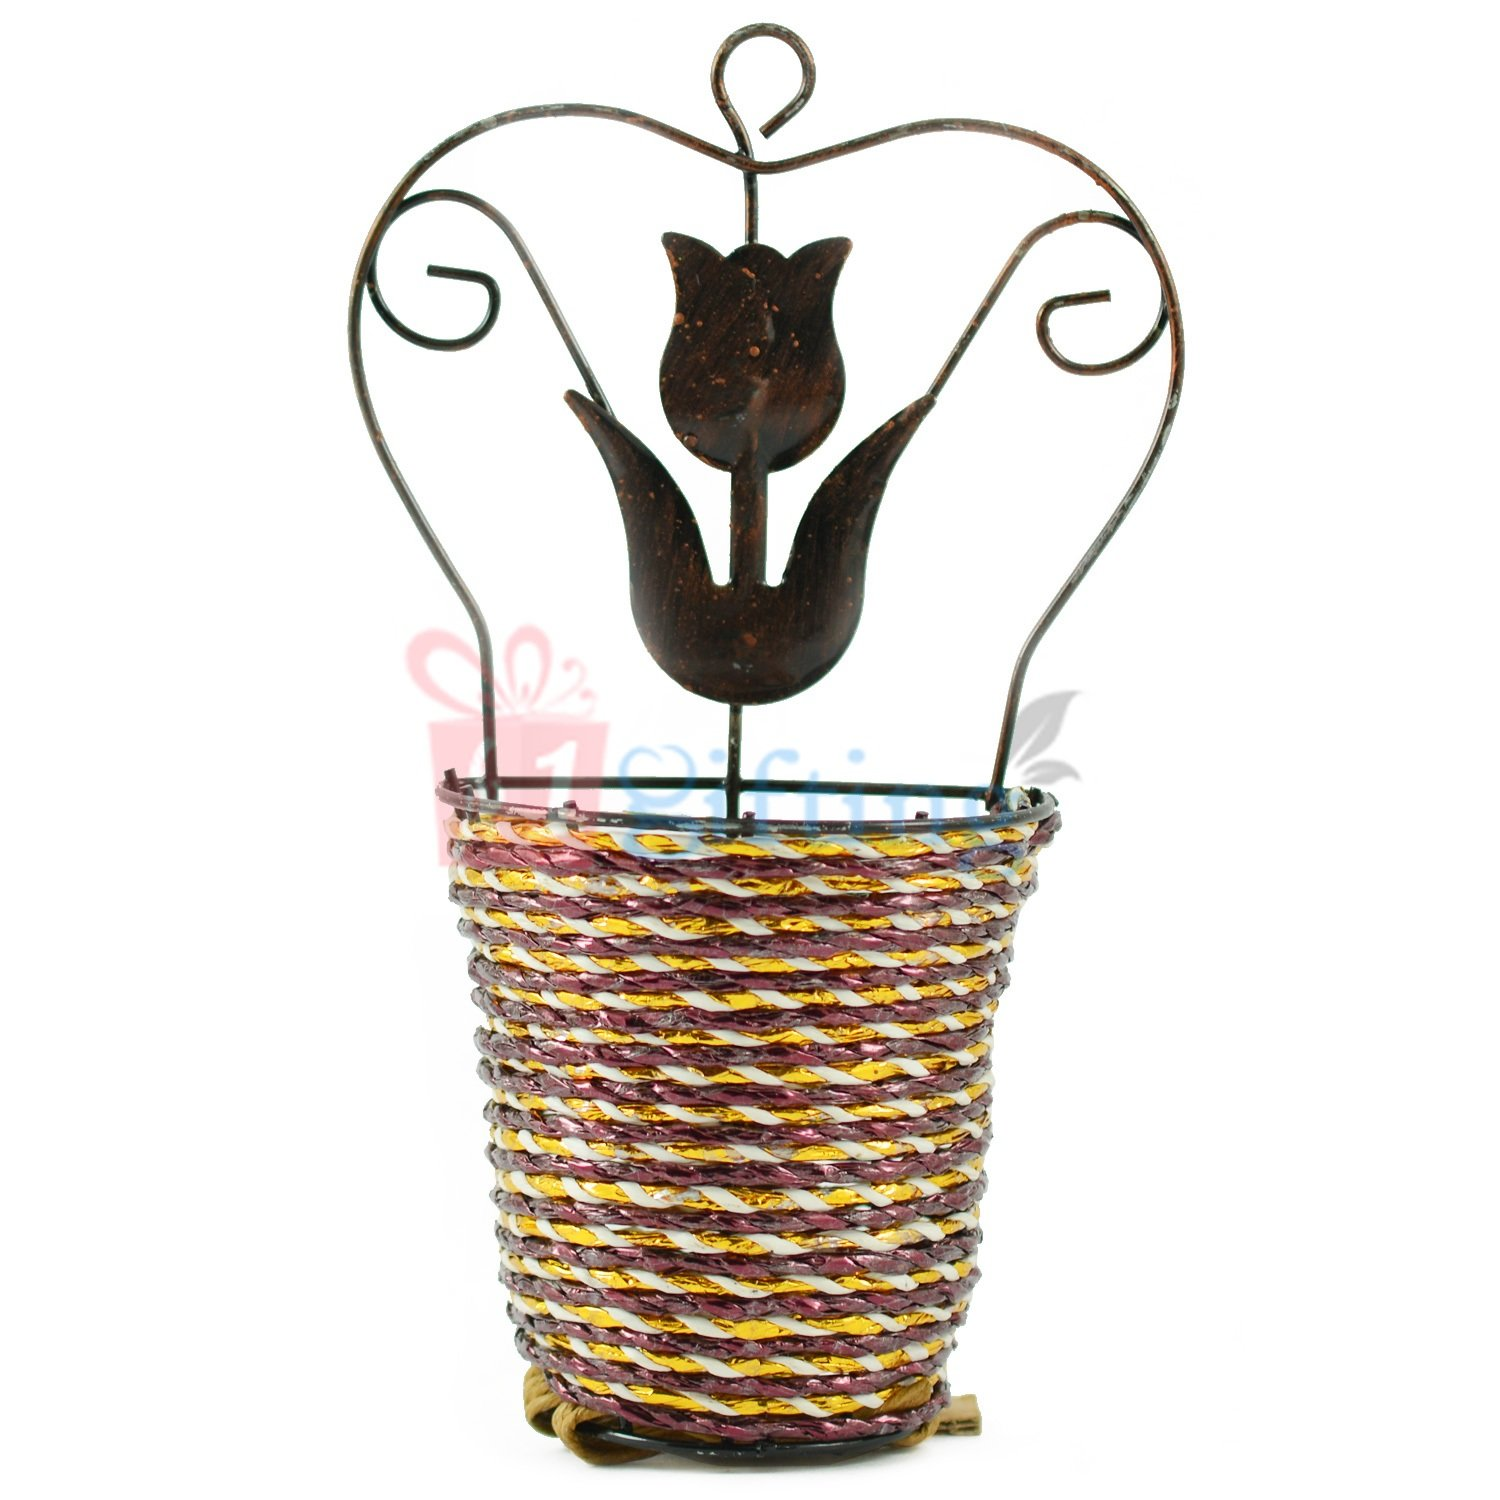 Wall Hanging Wired Flower Pot